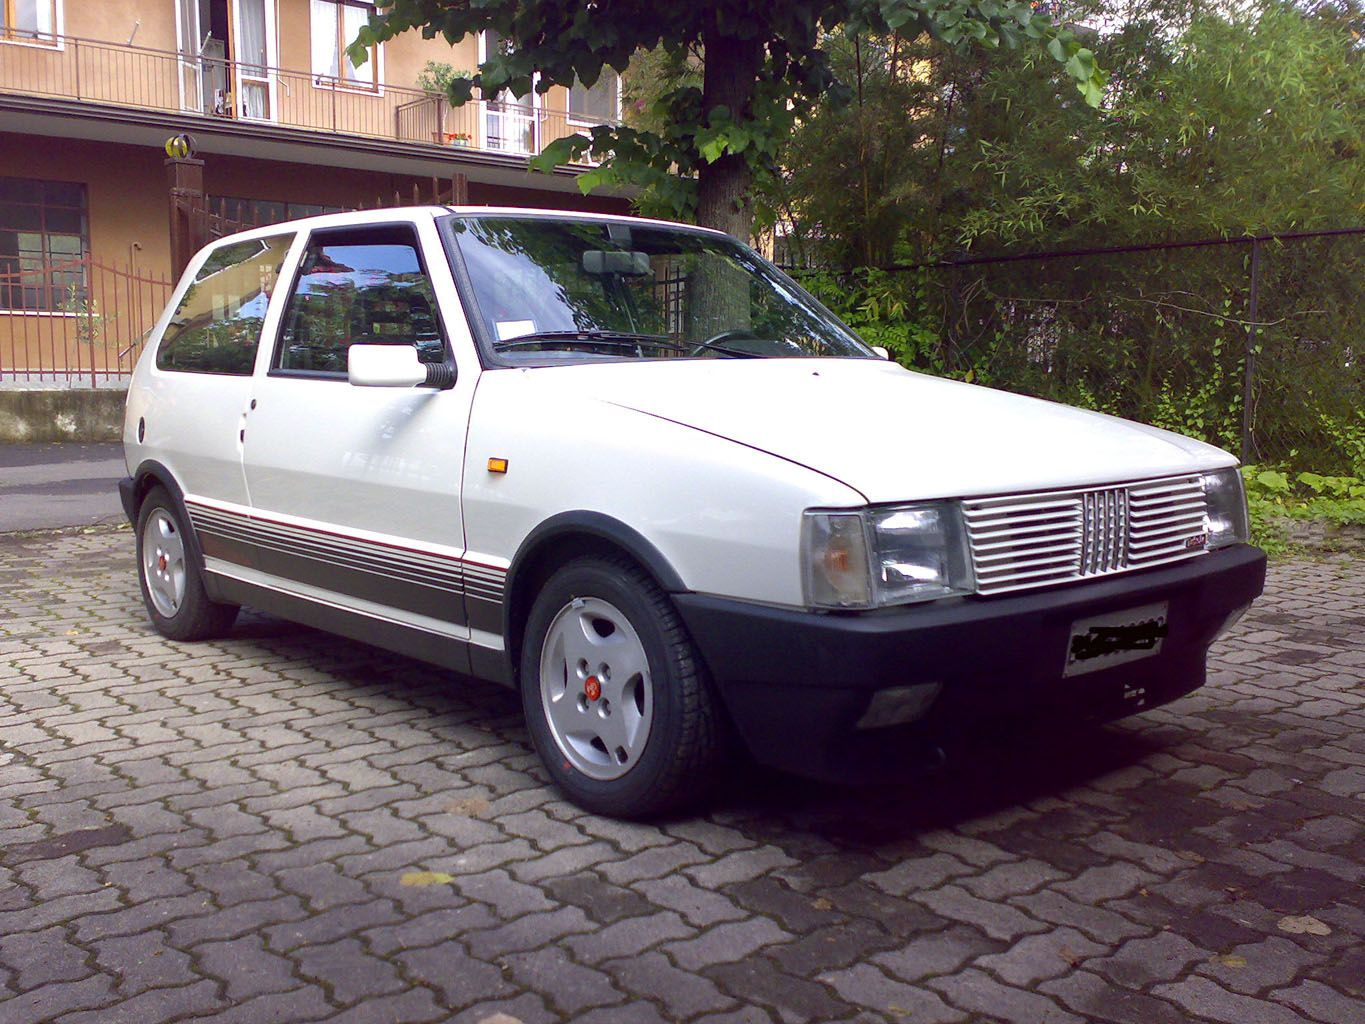 fiat uno turbo ie carscarscars pinterest fiat uno and cars. Black Bedroom Furniture Sets. Home Design Ideas